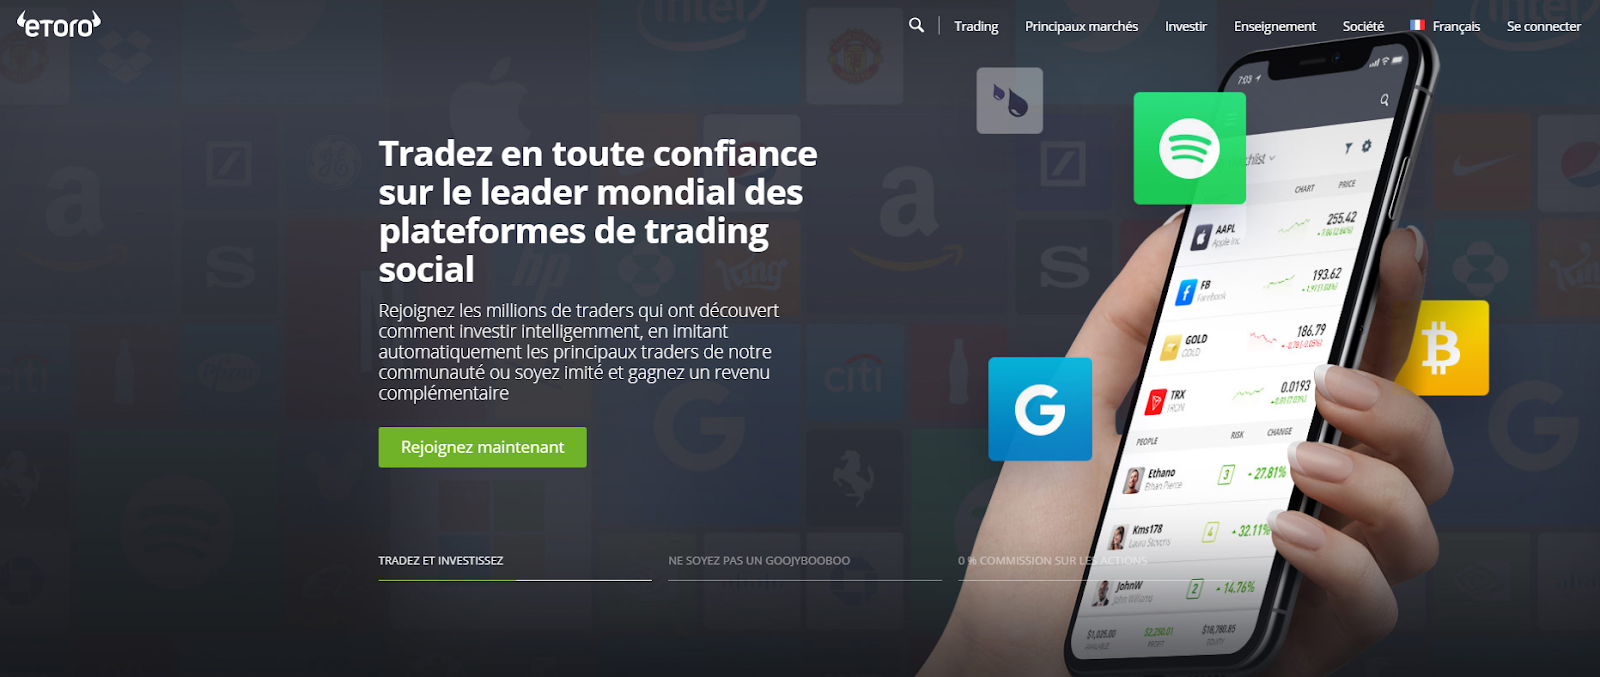 interface etoro